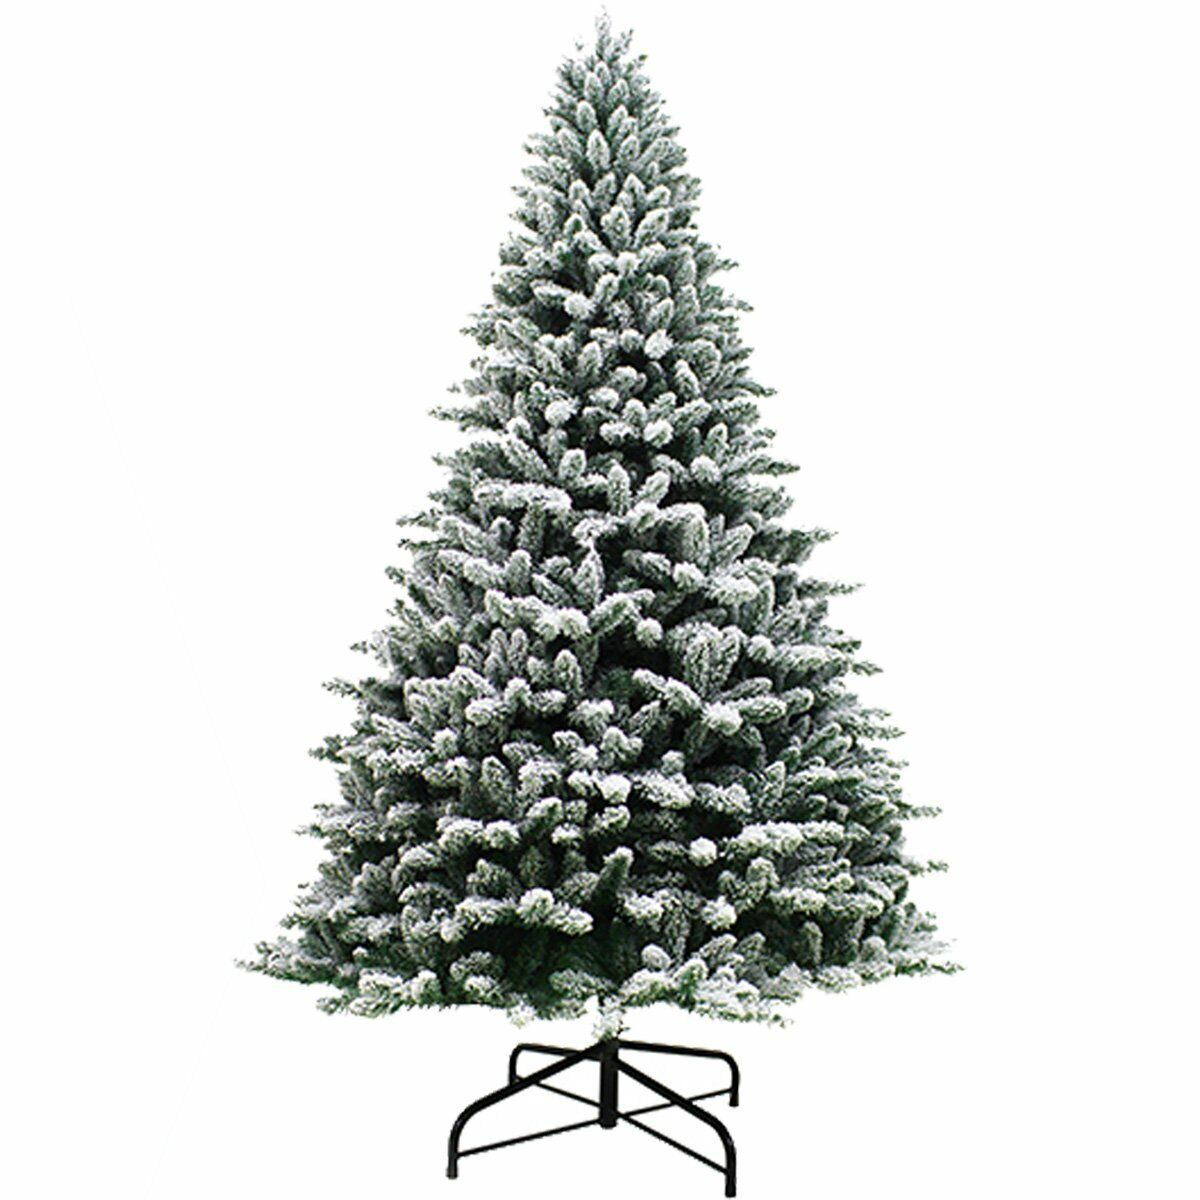 7ft Premium Snow Flocked Hinged Artificial Christmas Tree Unlit w/ Metal Stand Christmas Trees